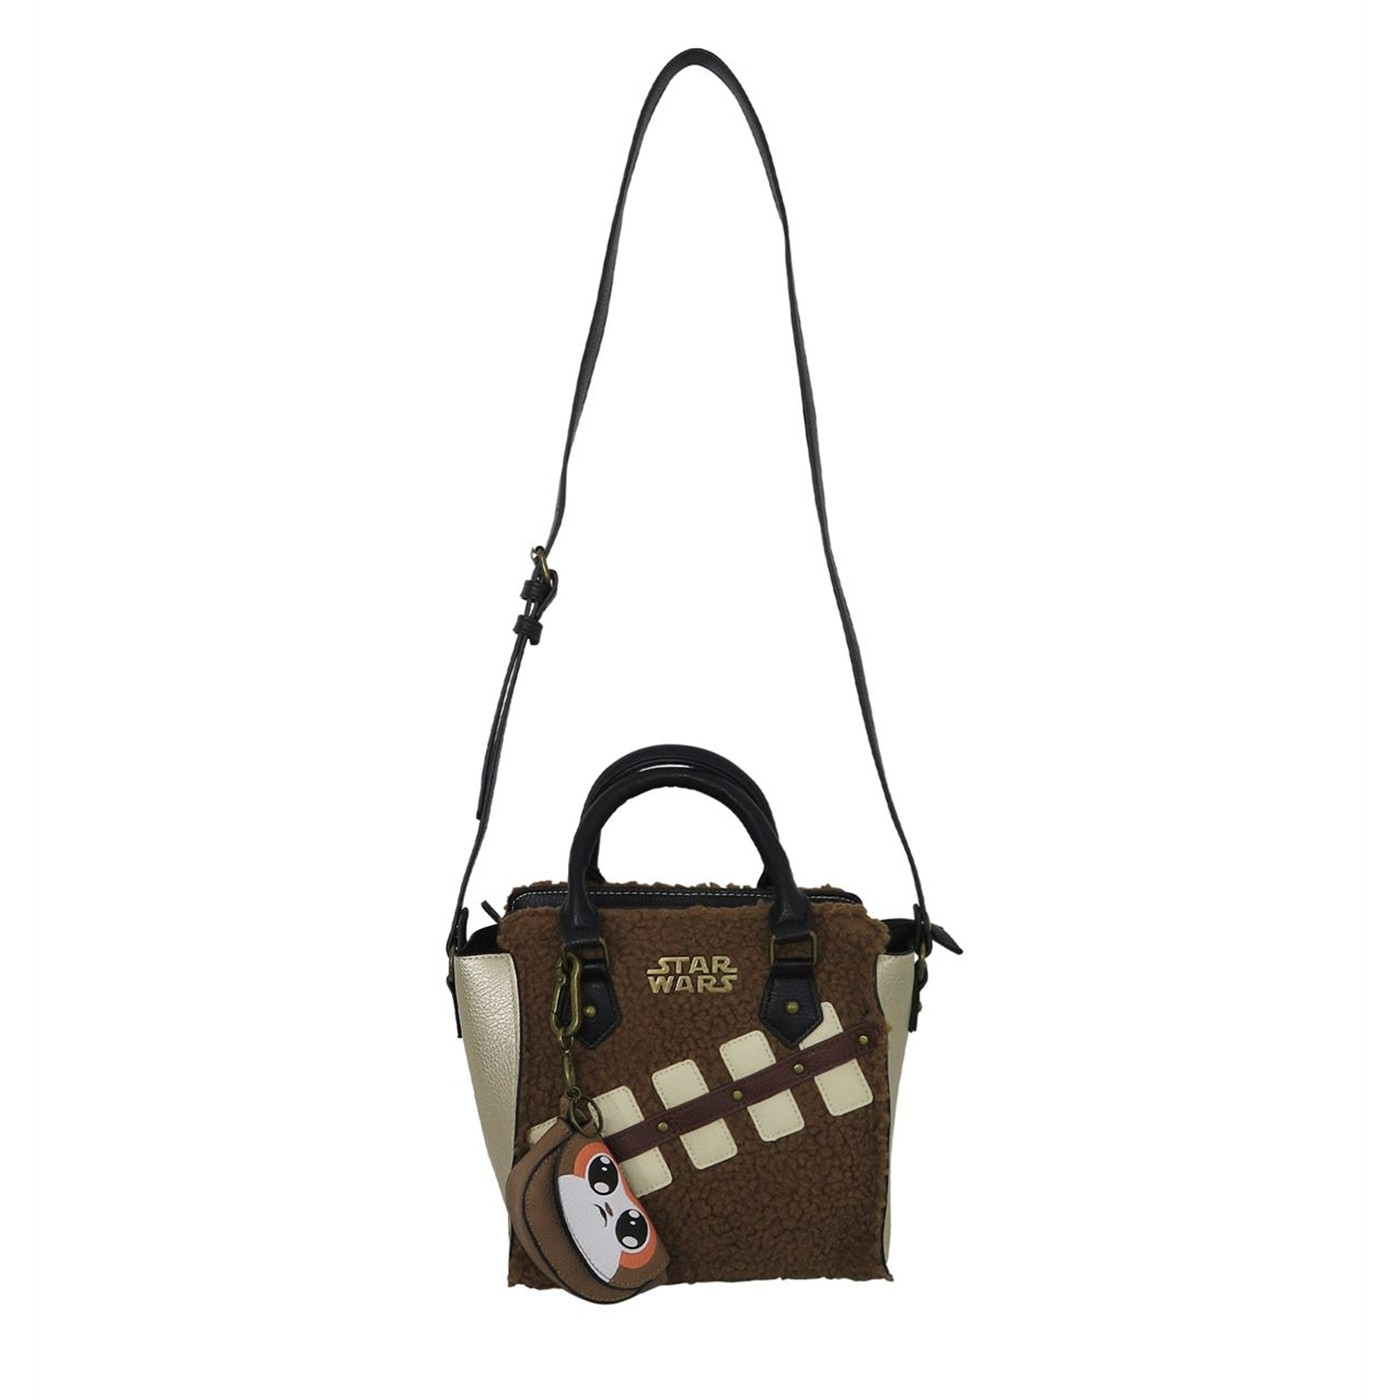 Star Wars Last Jedi Chewie & Porg Women's Mini Handbag